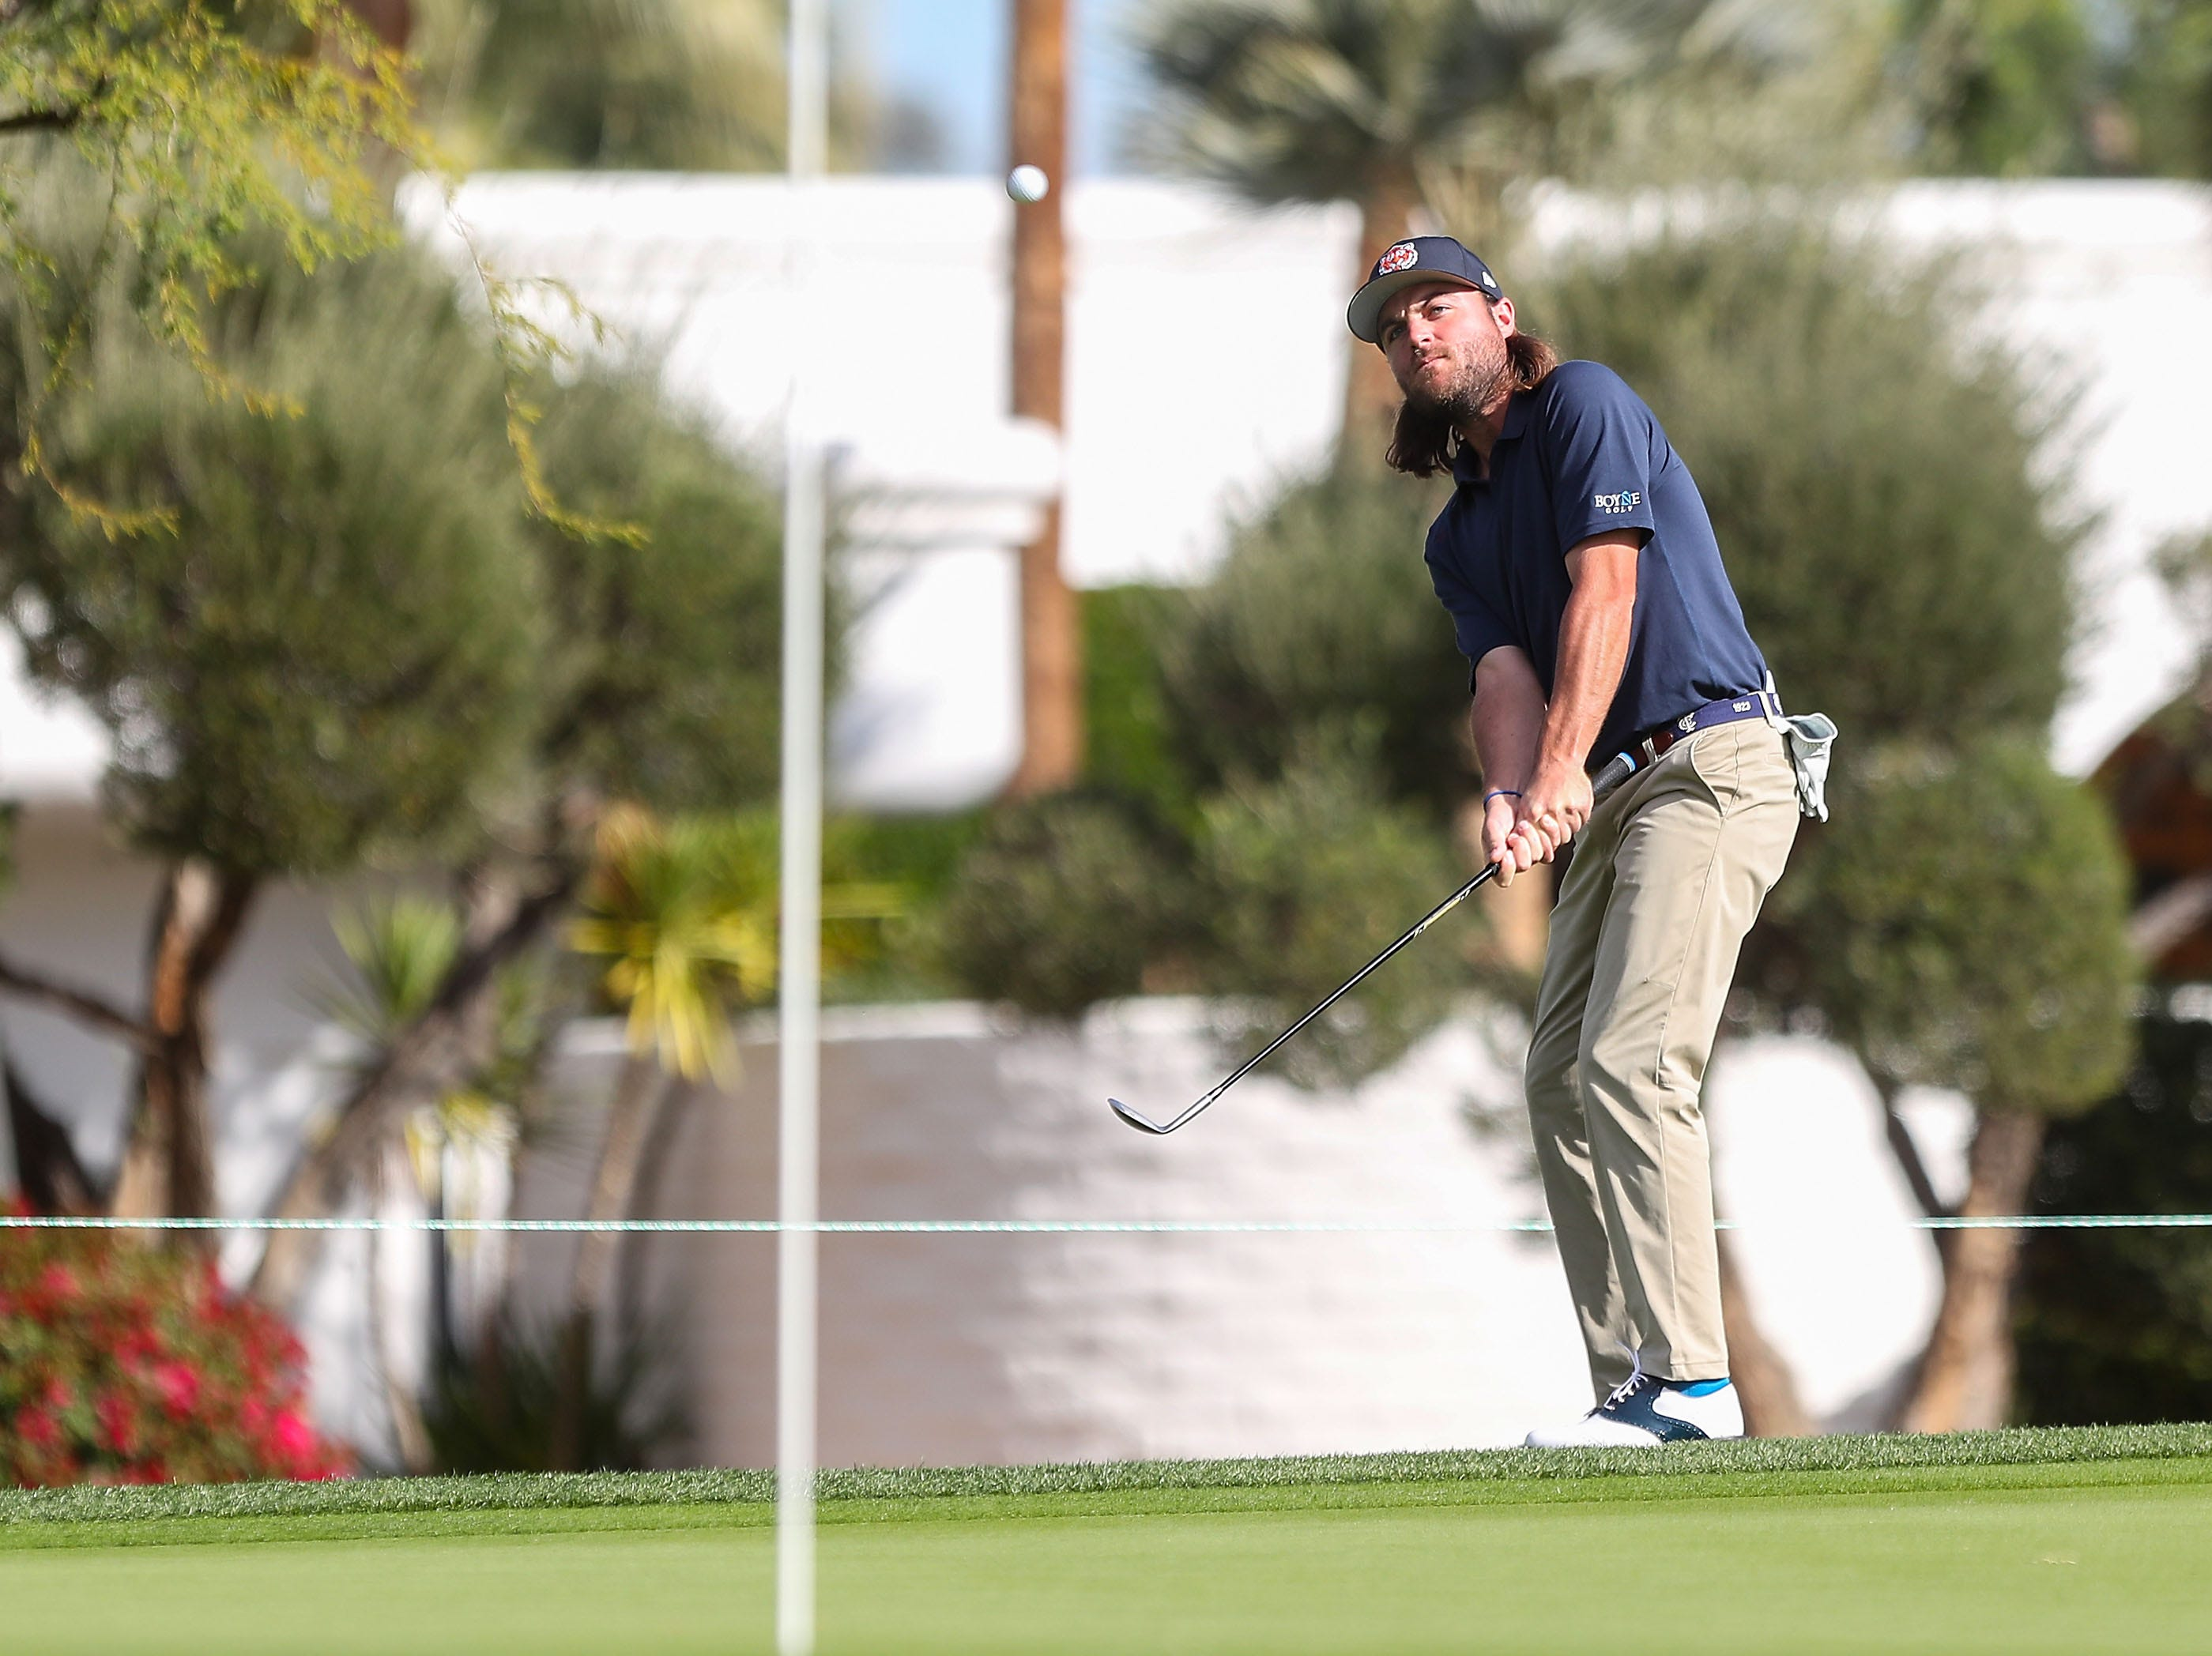 Joey Garber hits his third shot on the 10th hole at La Quinta Country Club during the Desert Classic, January 18, 2019.